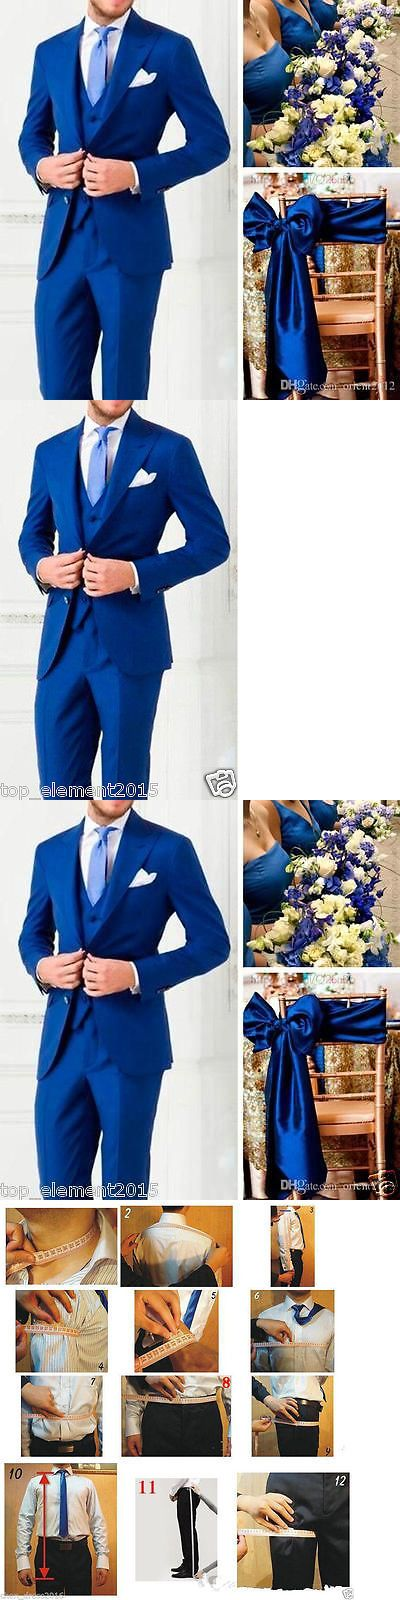 Tuxedos and Formal Suits 105515: Royal Blue Slim Fit Formal Groomsmen Wedding Suits Men Groom Suit Tuxedo Custom -> BUY IT NOW ONLY: $82.99 on eBay!